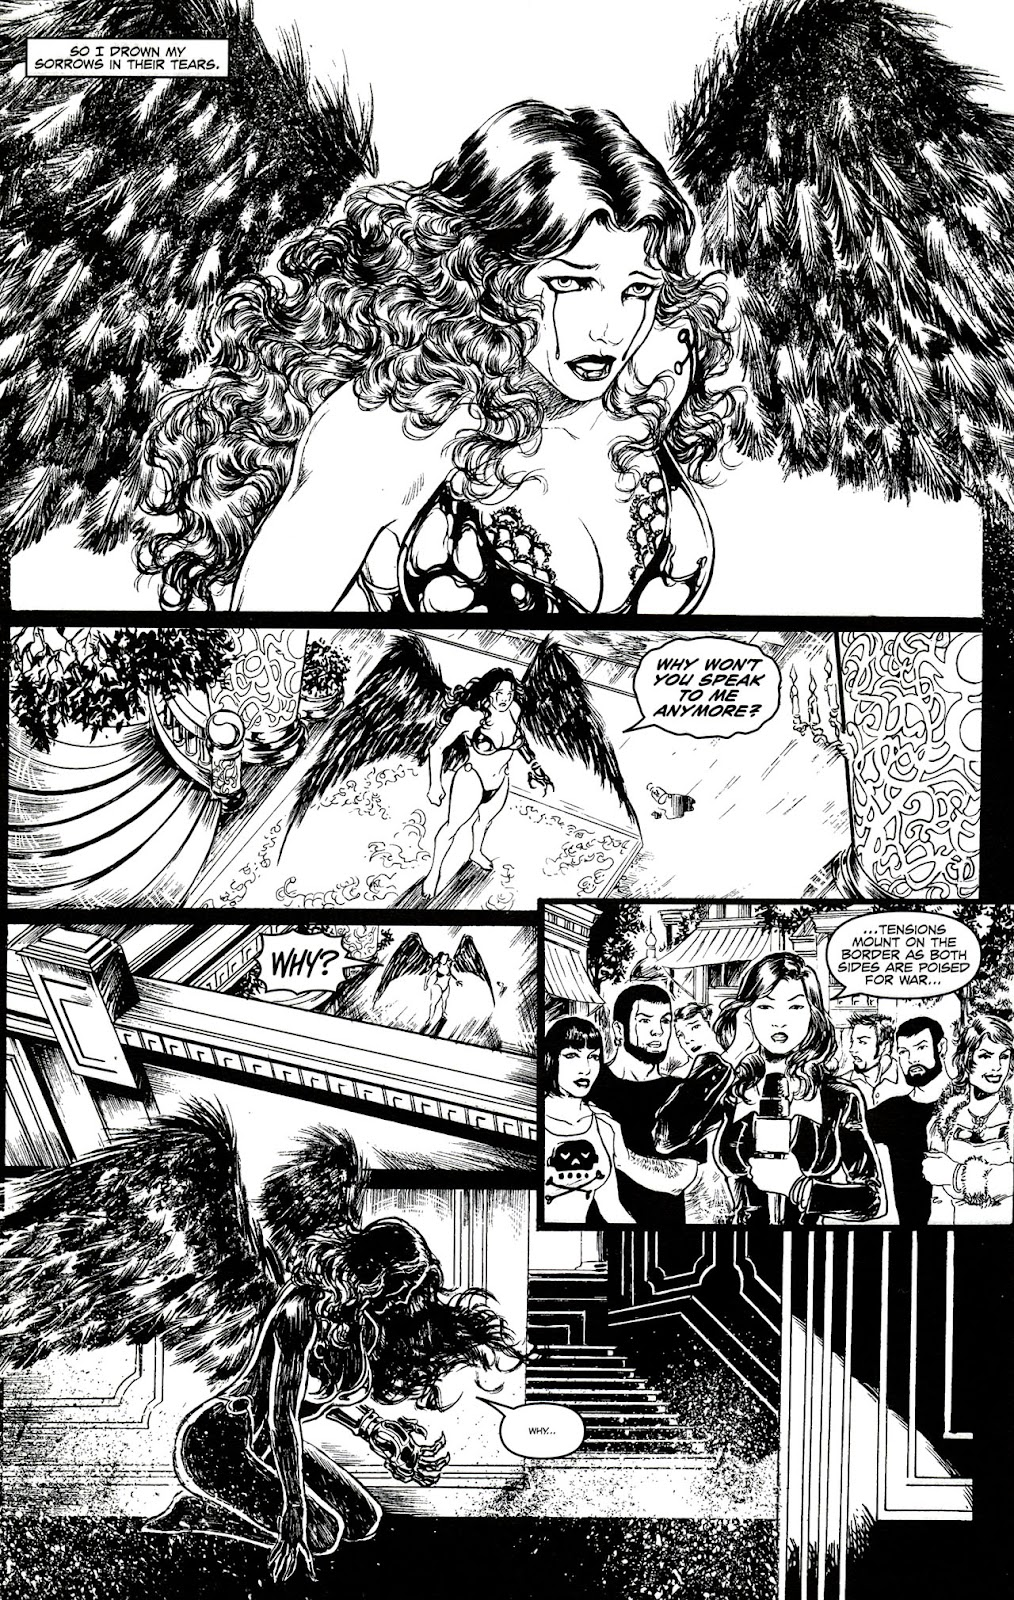 Read online Brian Pulido's War Angel comic -  Issue #0 - 15